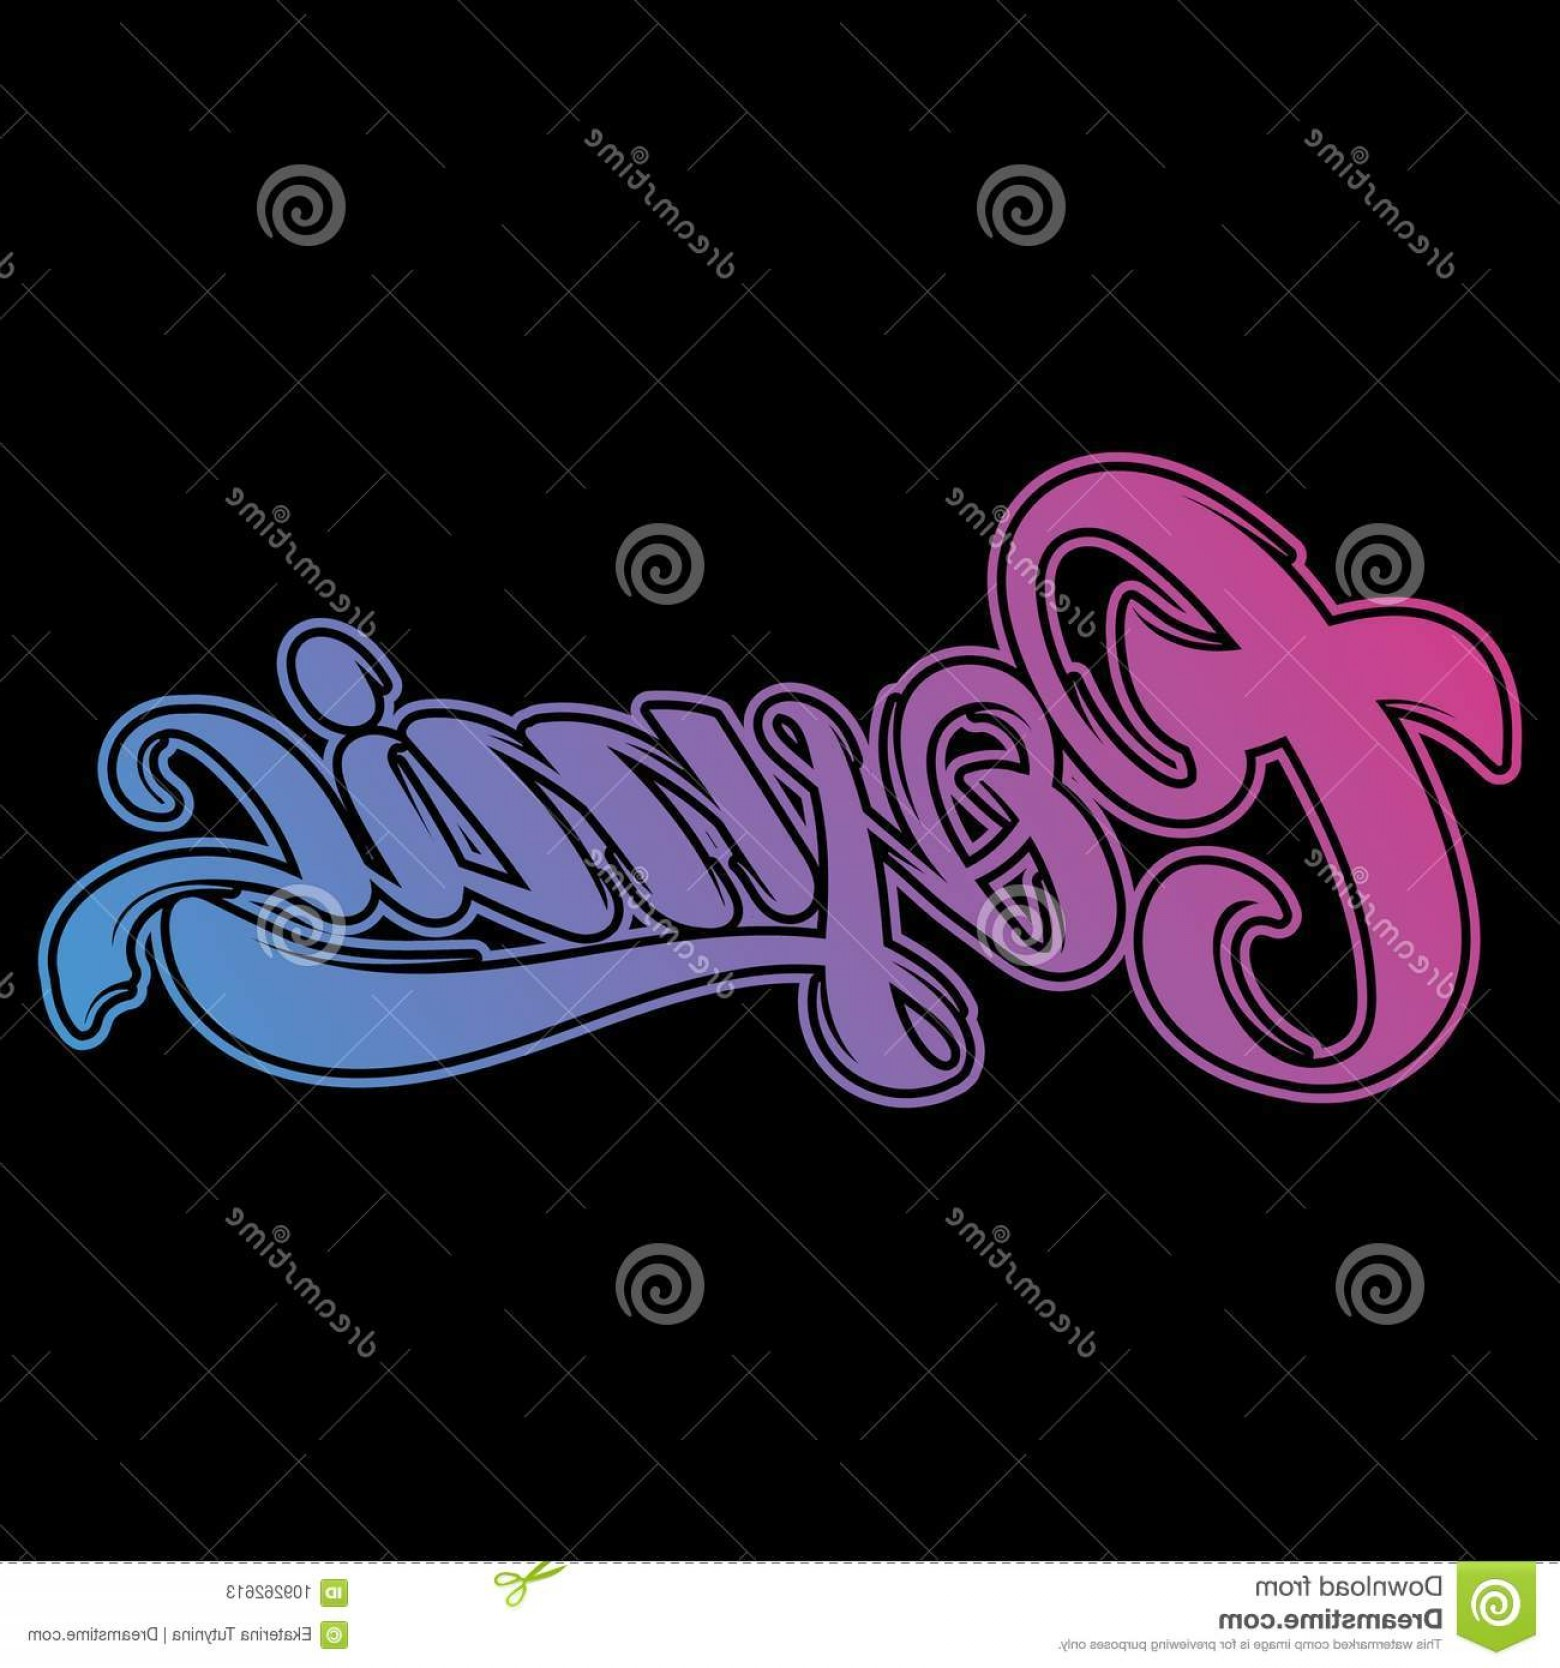 Cosmic Vector Imige: Cosmic Vector Handwritten Unique Lettering Isolated Modern Calligraphy Template Card Poster Banner Print T Shirt Logotype Image